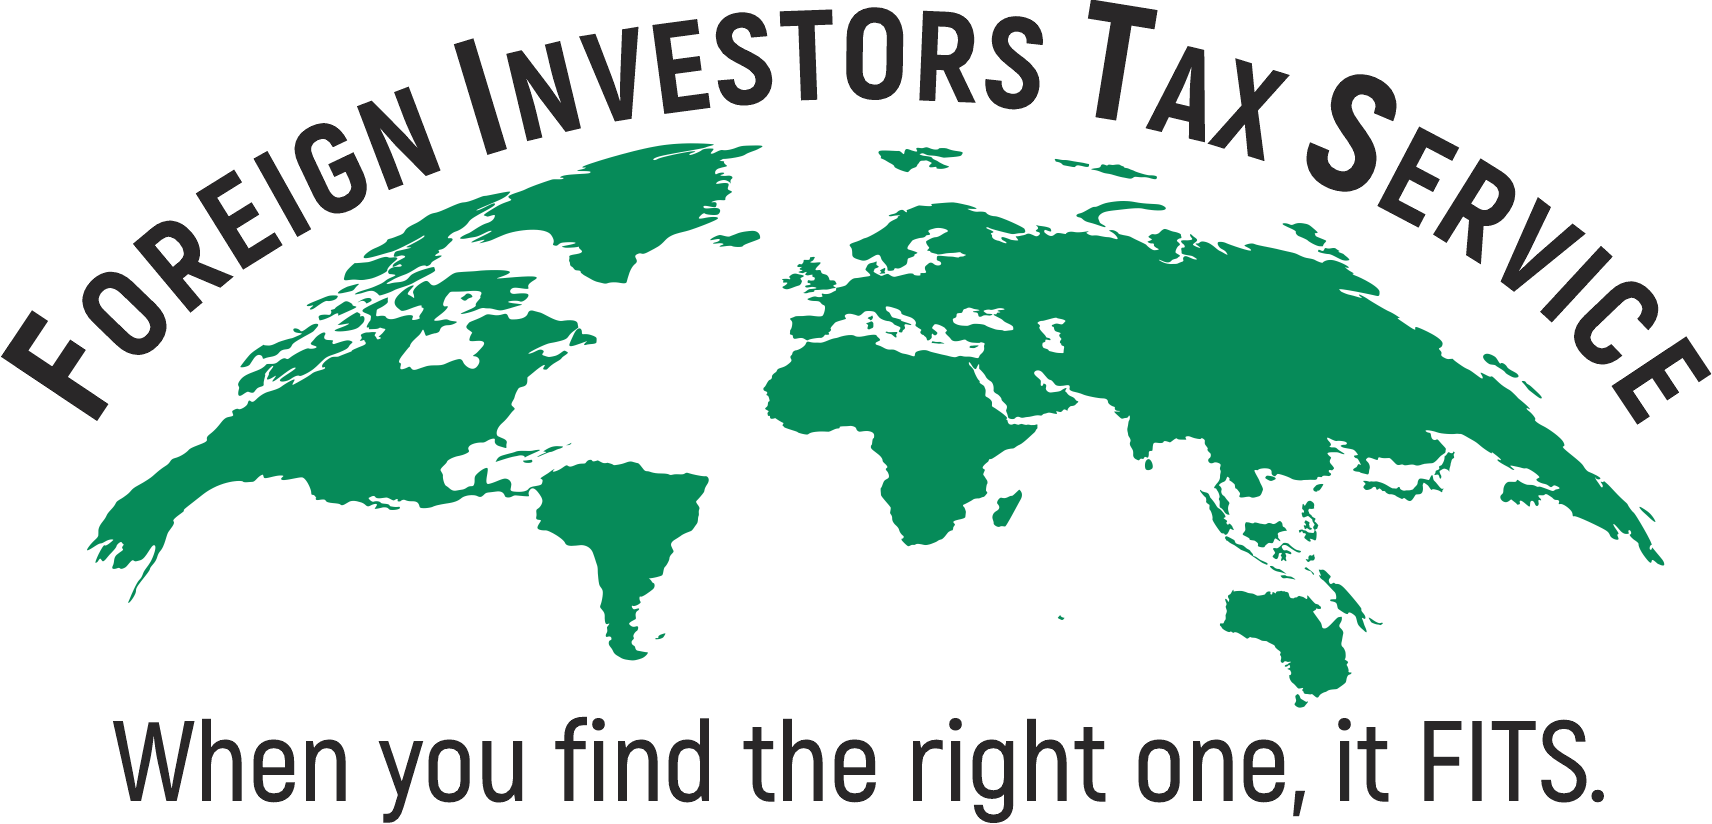 Foreign Investors Tax Service